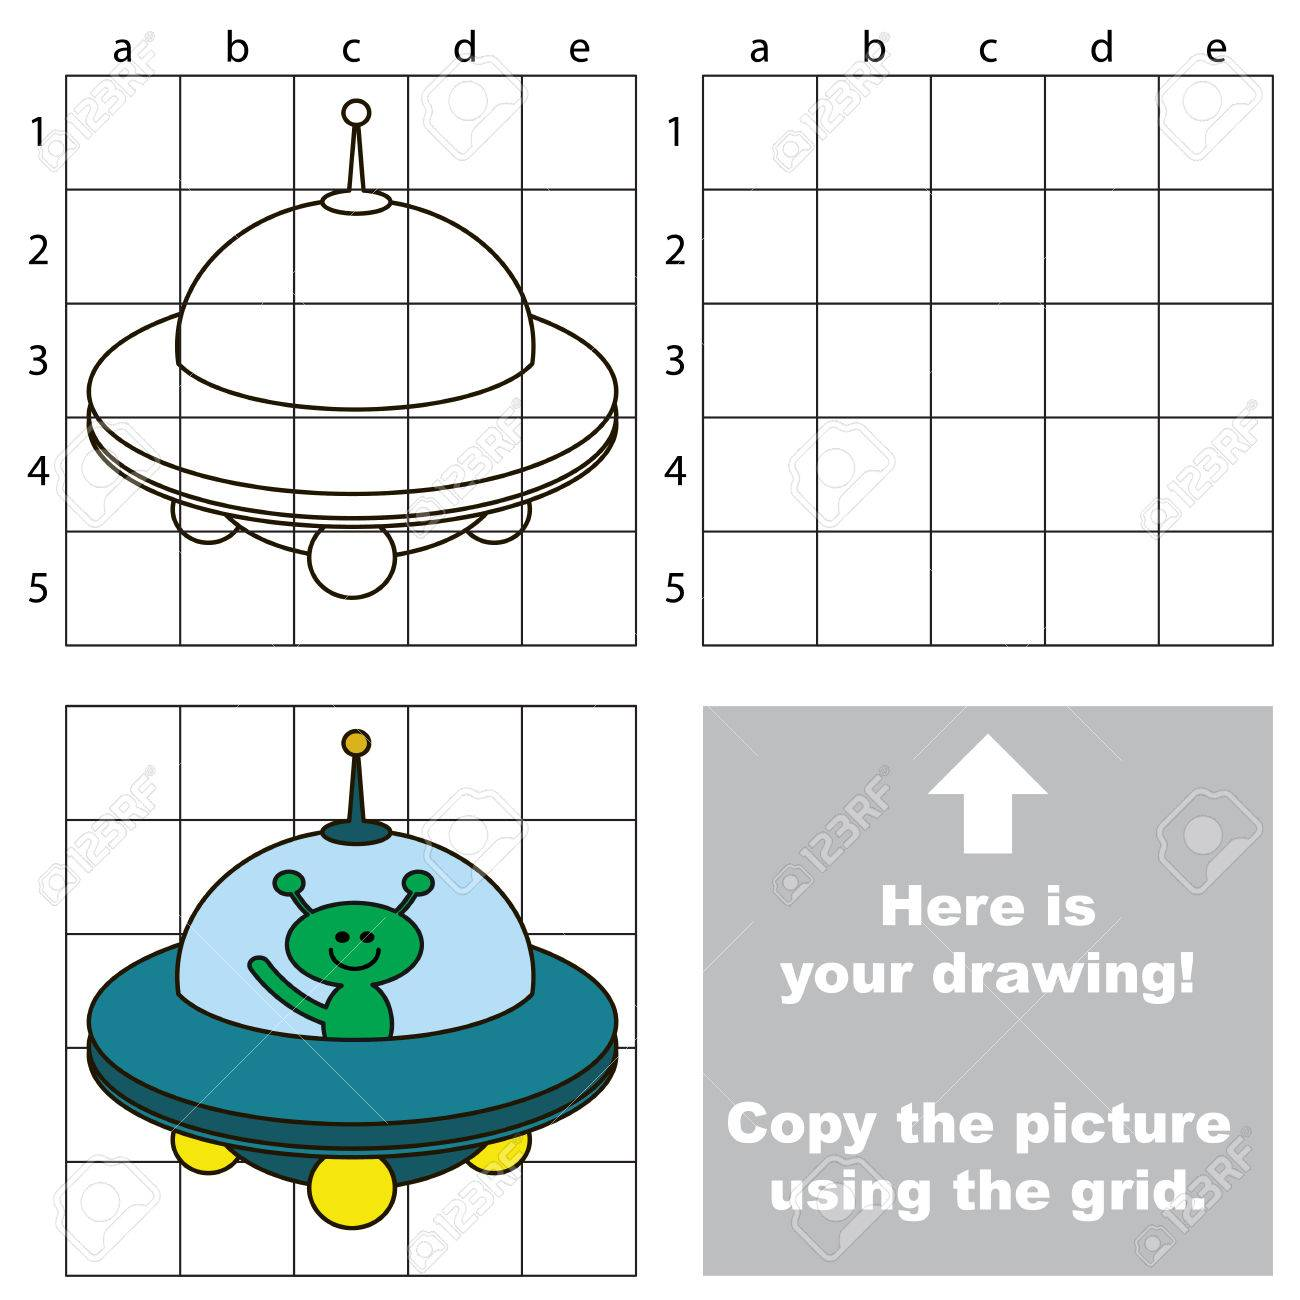 hight resolution of copy the picture using grid lines easy educational game for rh 123rf com cartoon ufo ufo designs